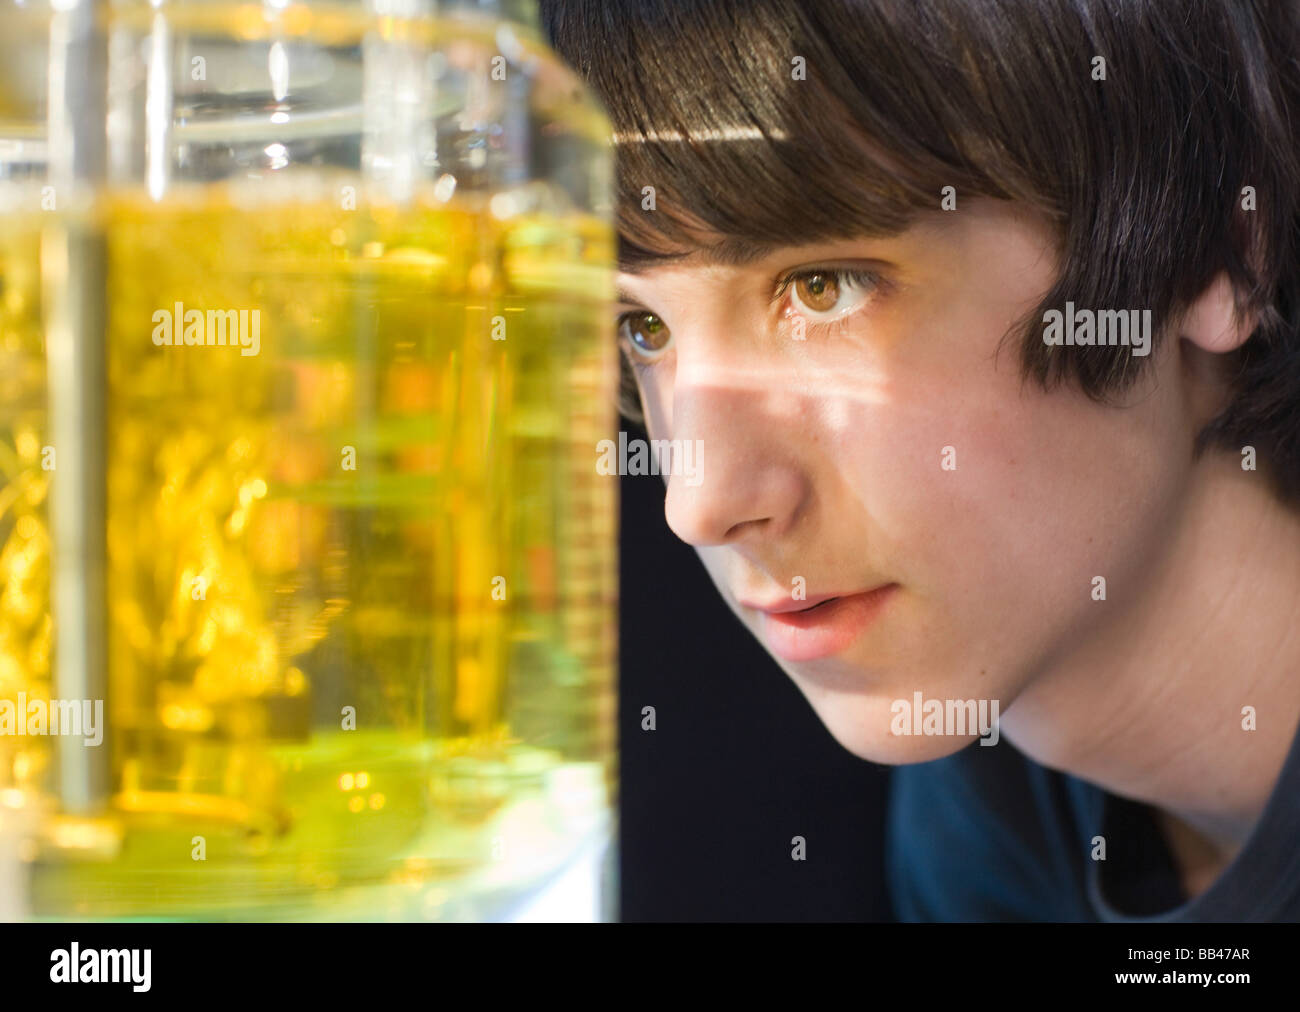 Student at chemistry class - Stock Image